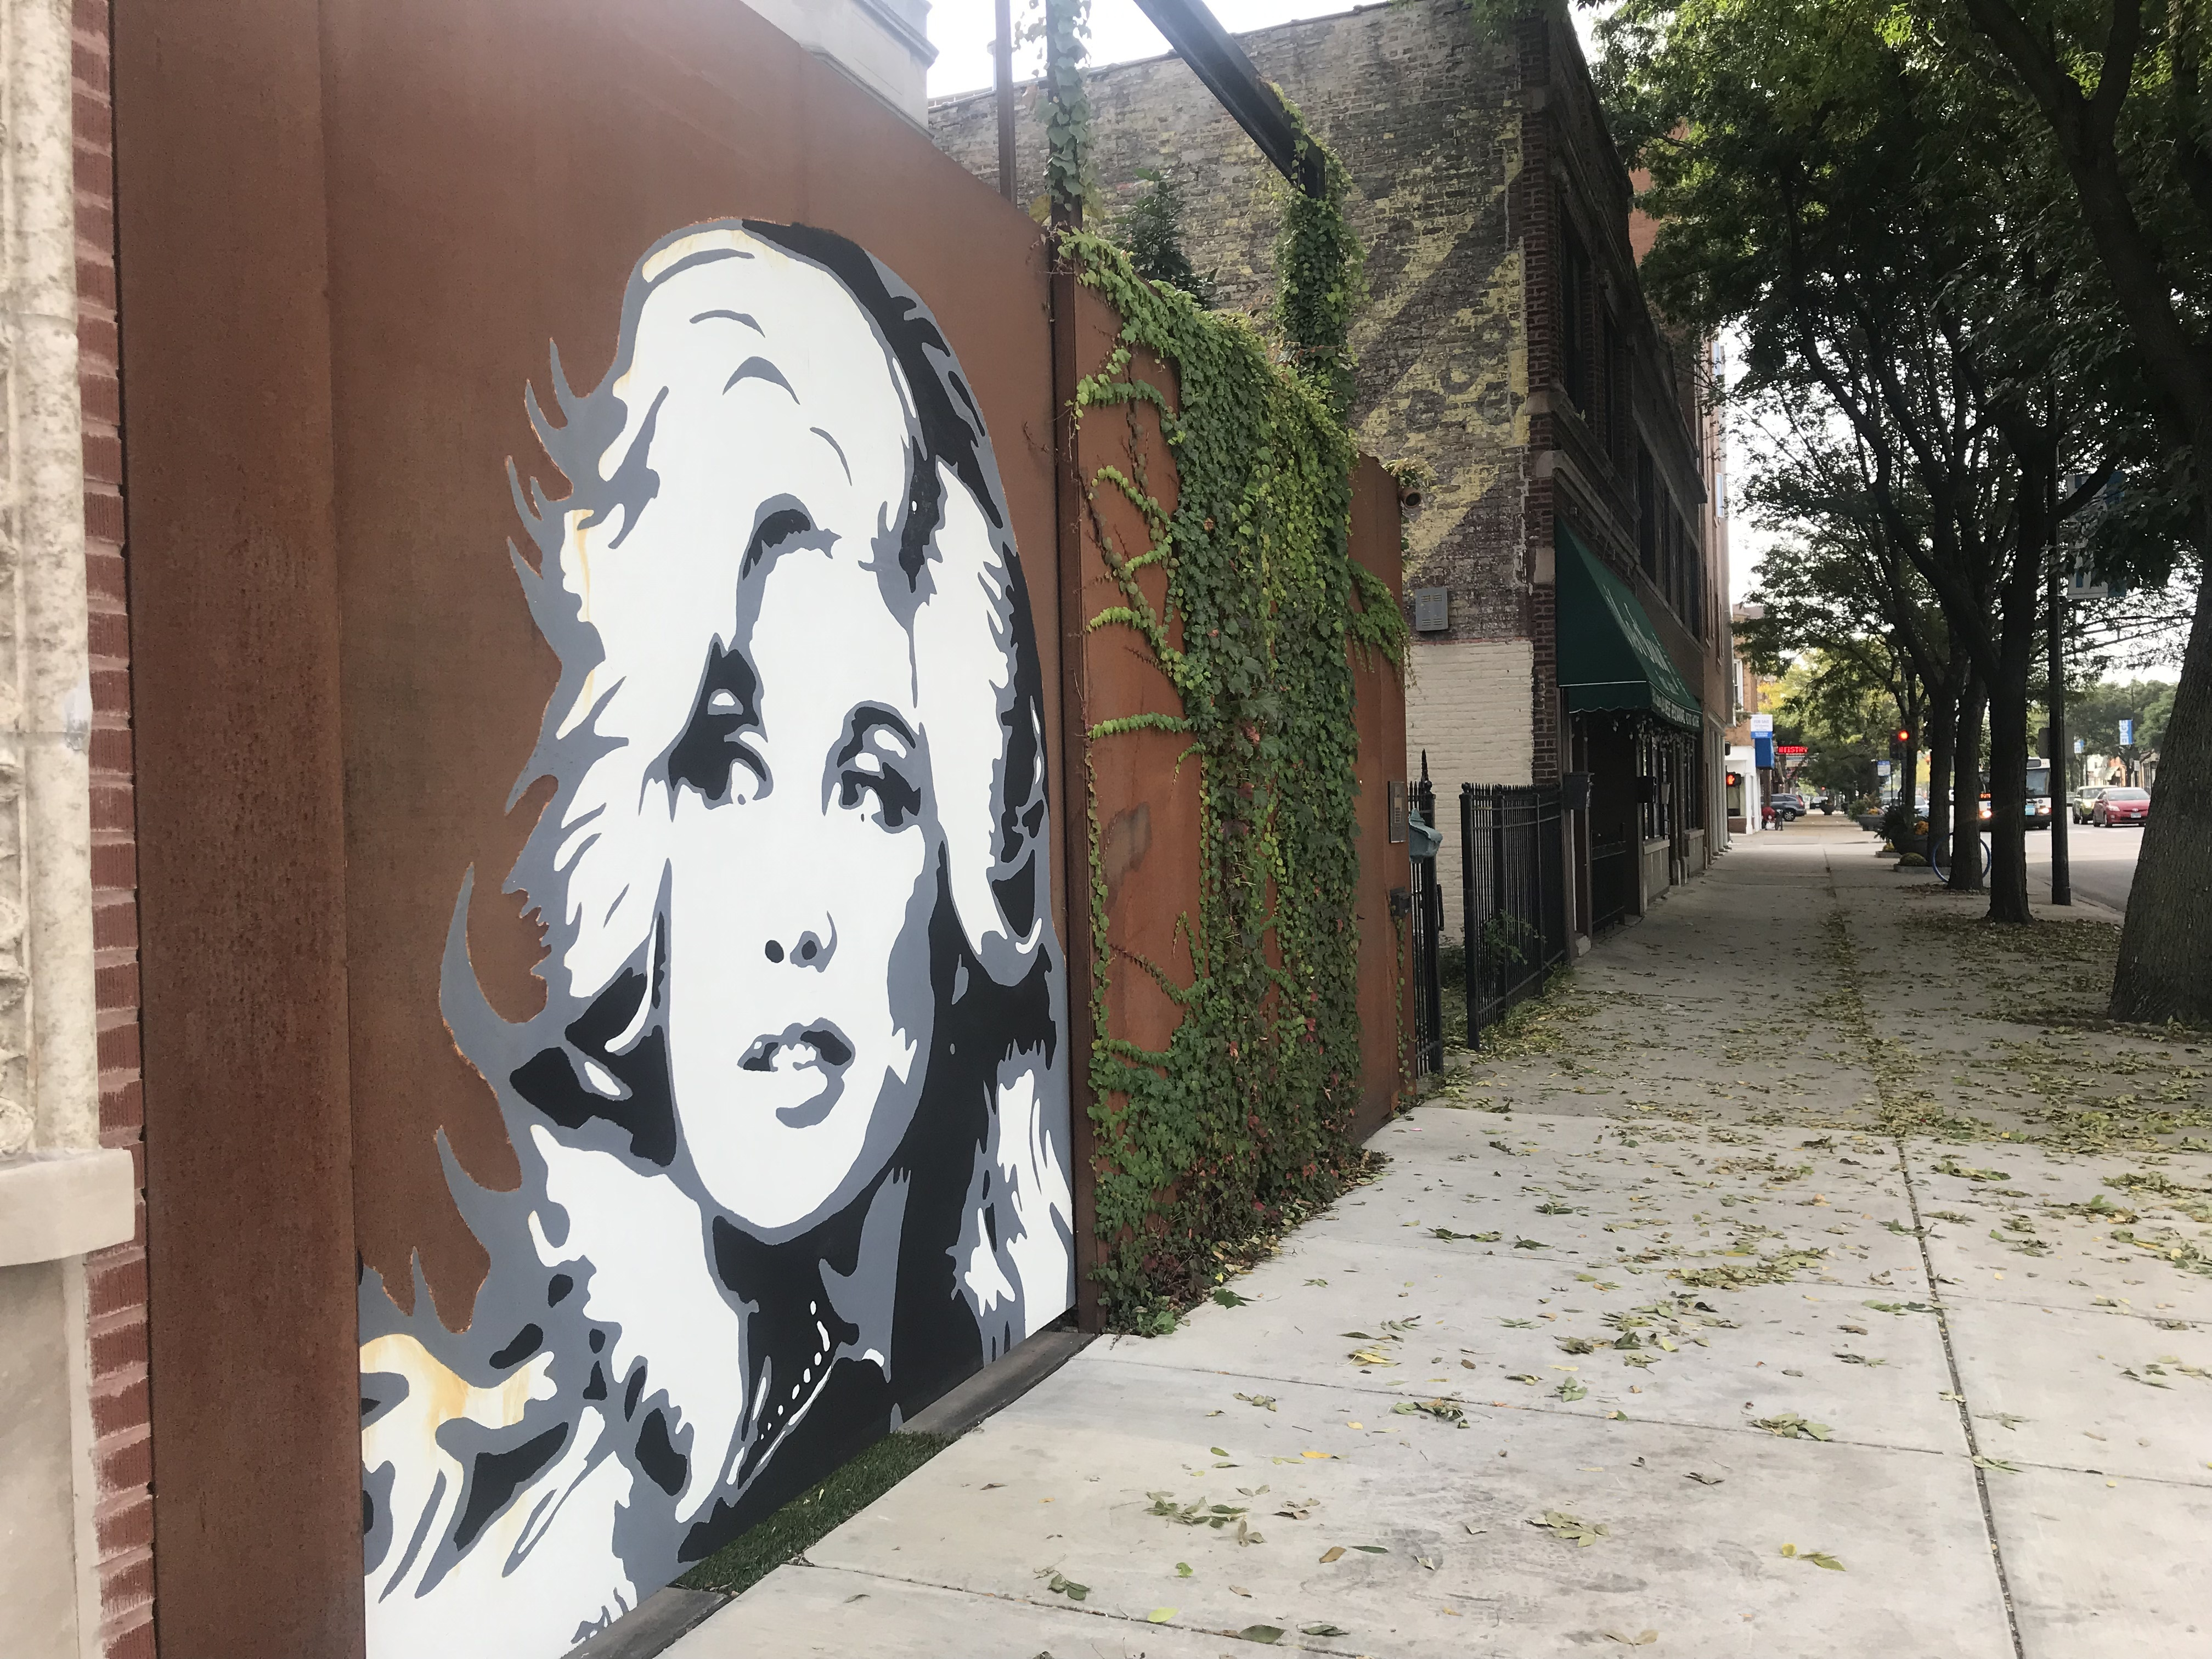 A mural of country music icon Dolly Parton adorns a gate in Edgewater.